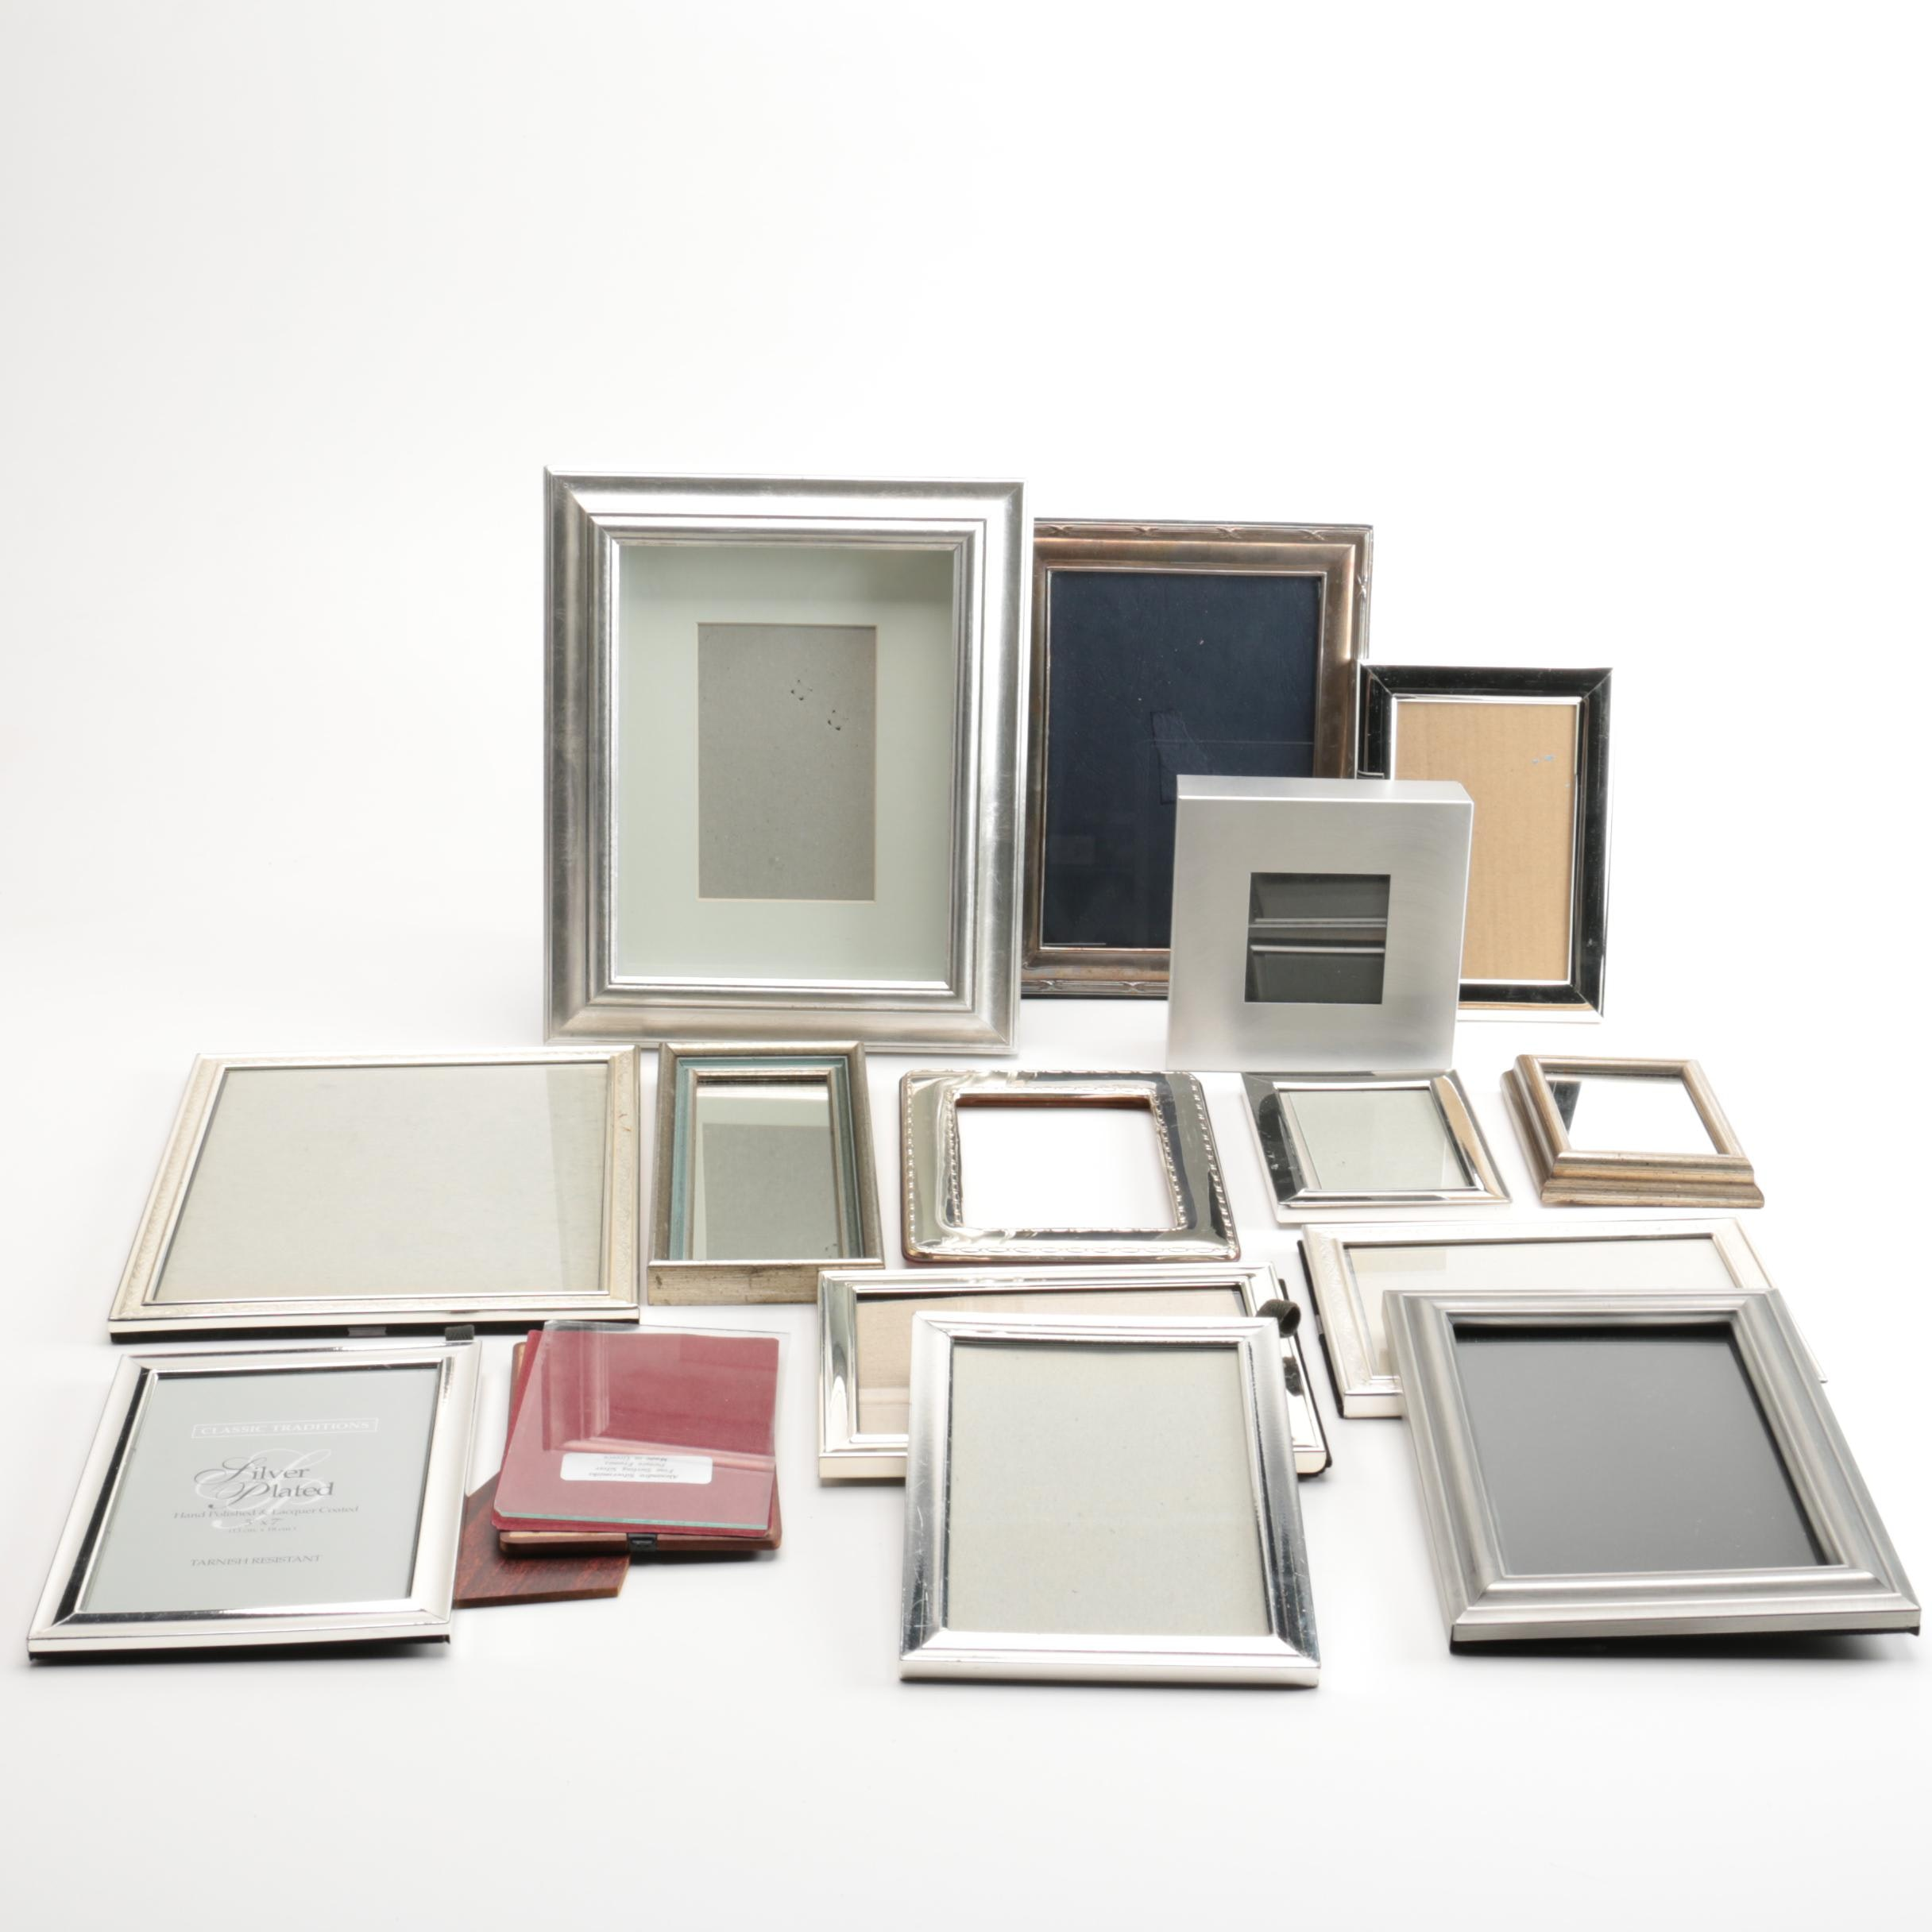 Silver Tone Photo Frames with Other Frames